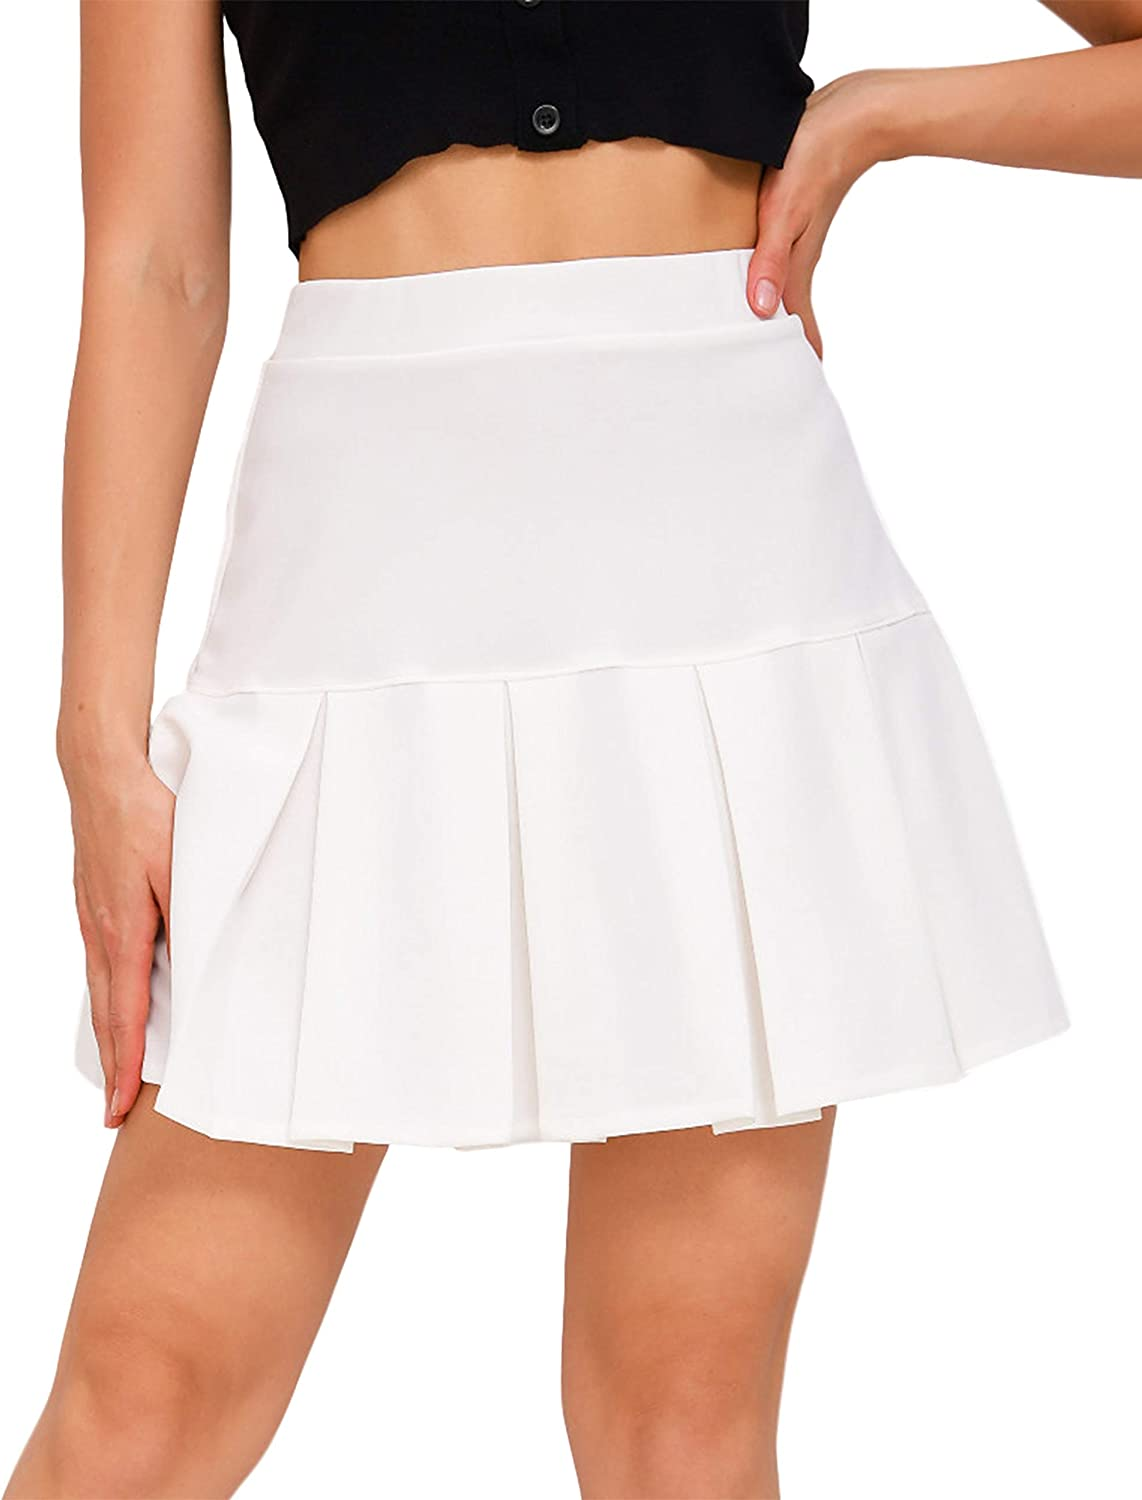 Uaneo Womens Casual Solid Pleated Elastic High Waist A-Line Skater Mini Skirts(White-M)